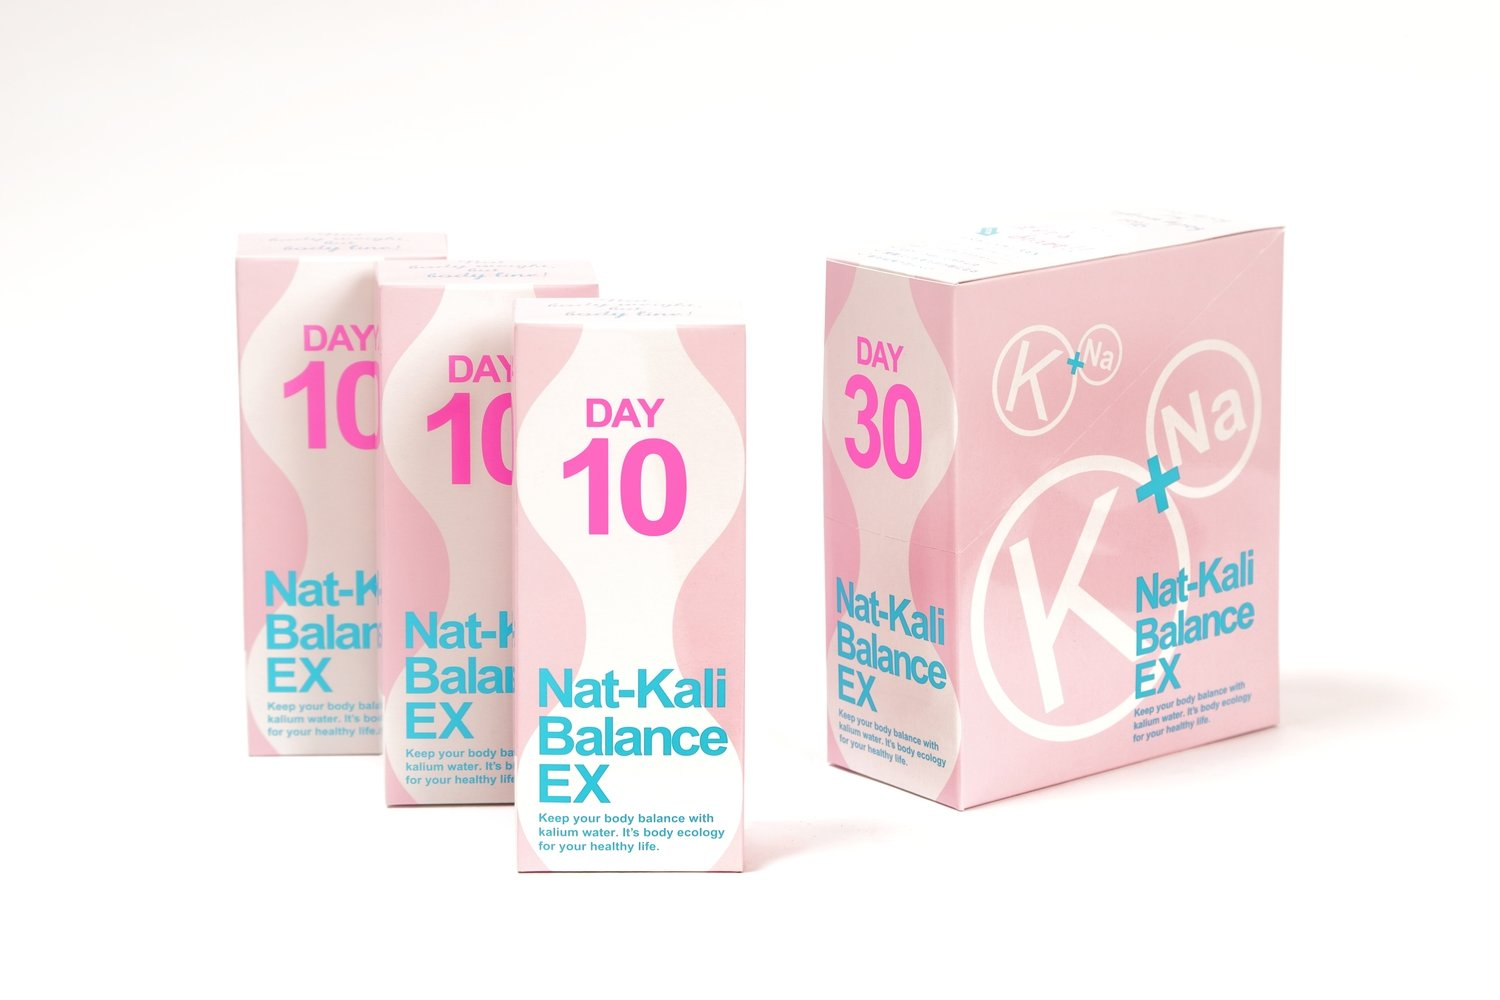 Nat-Kali Balance EX [ 30 days ]